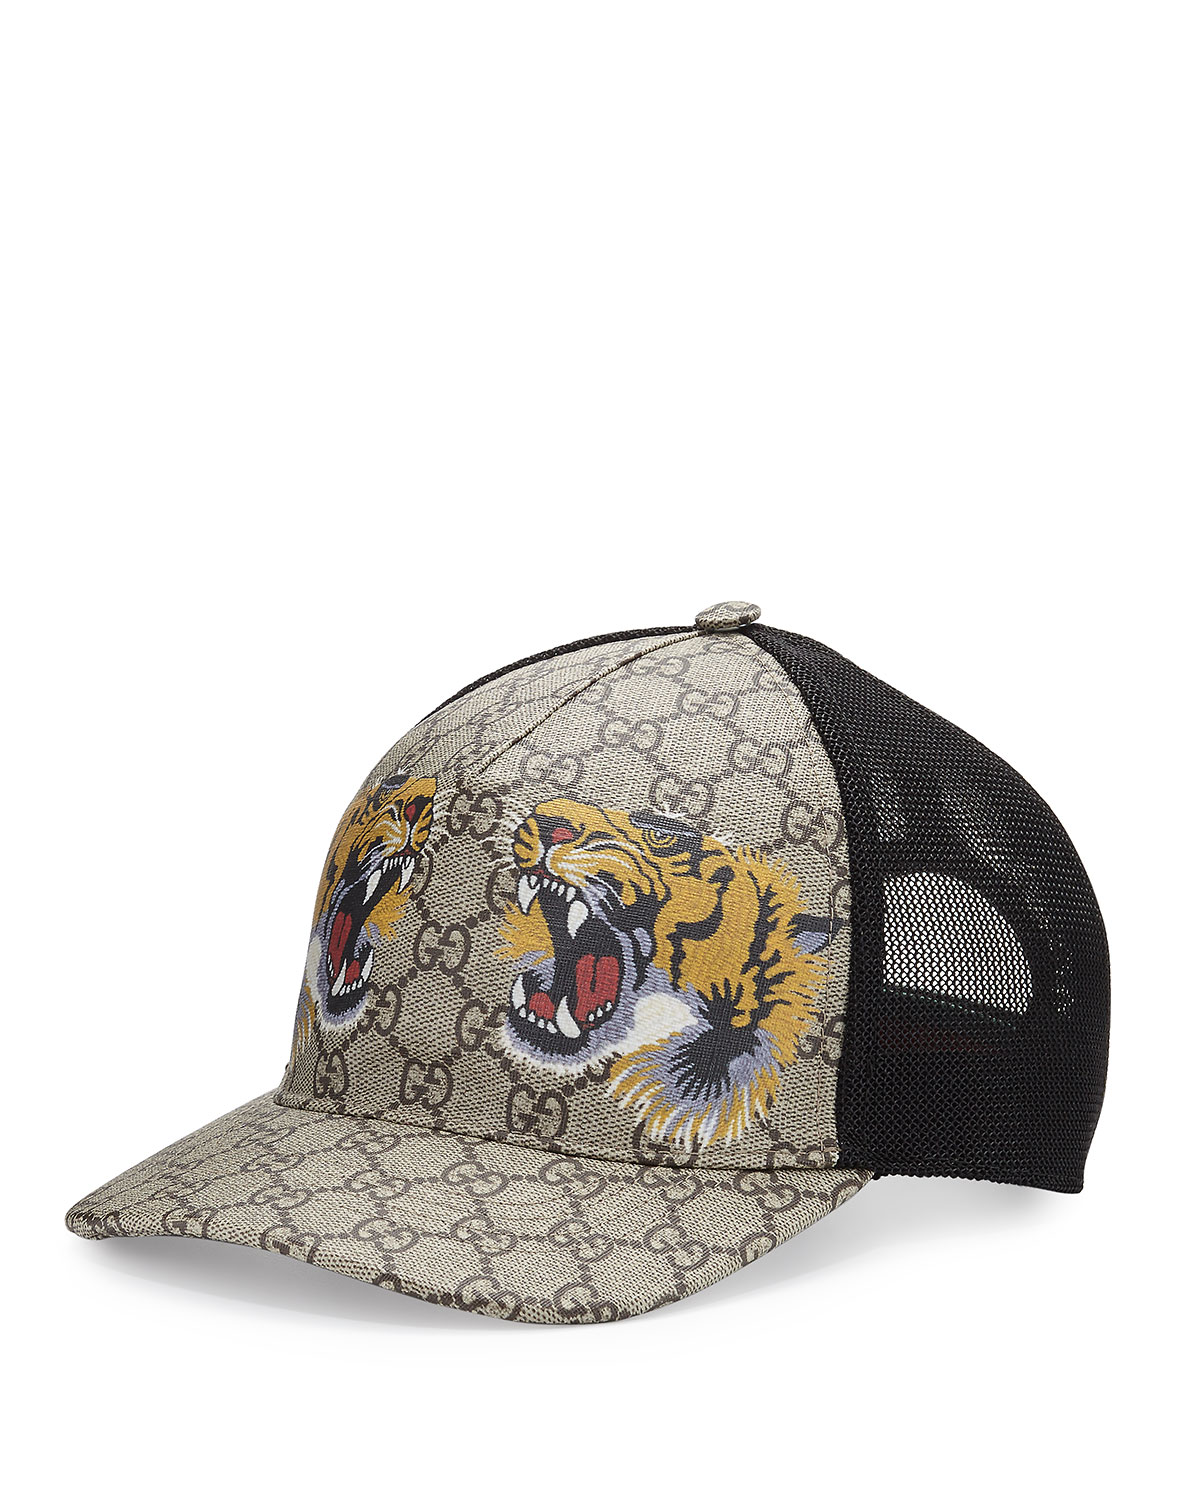 d535ac3bbe9473 Gucci Tigers-Print GG Supreme Baseball Hat, Dark Brown/Black ...